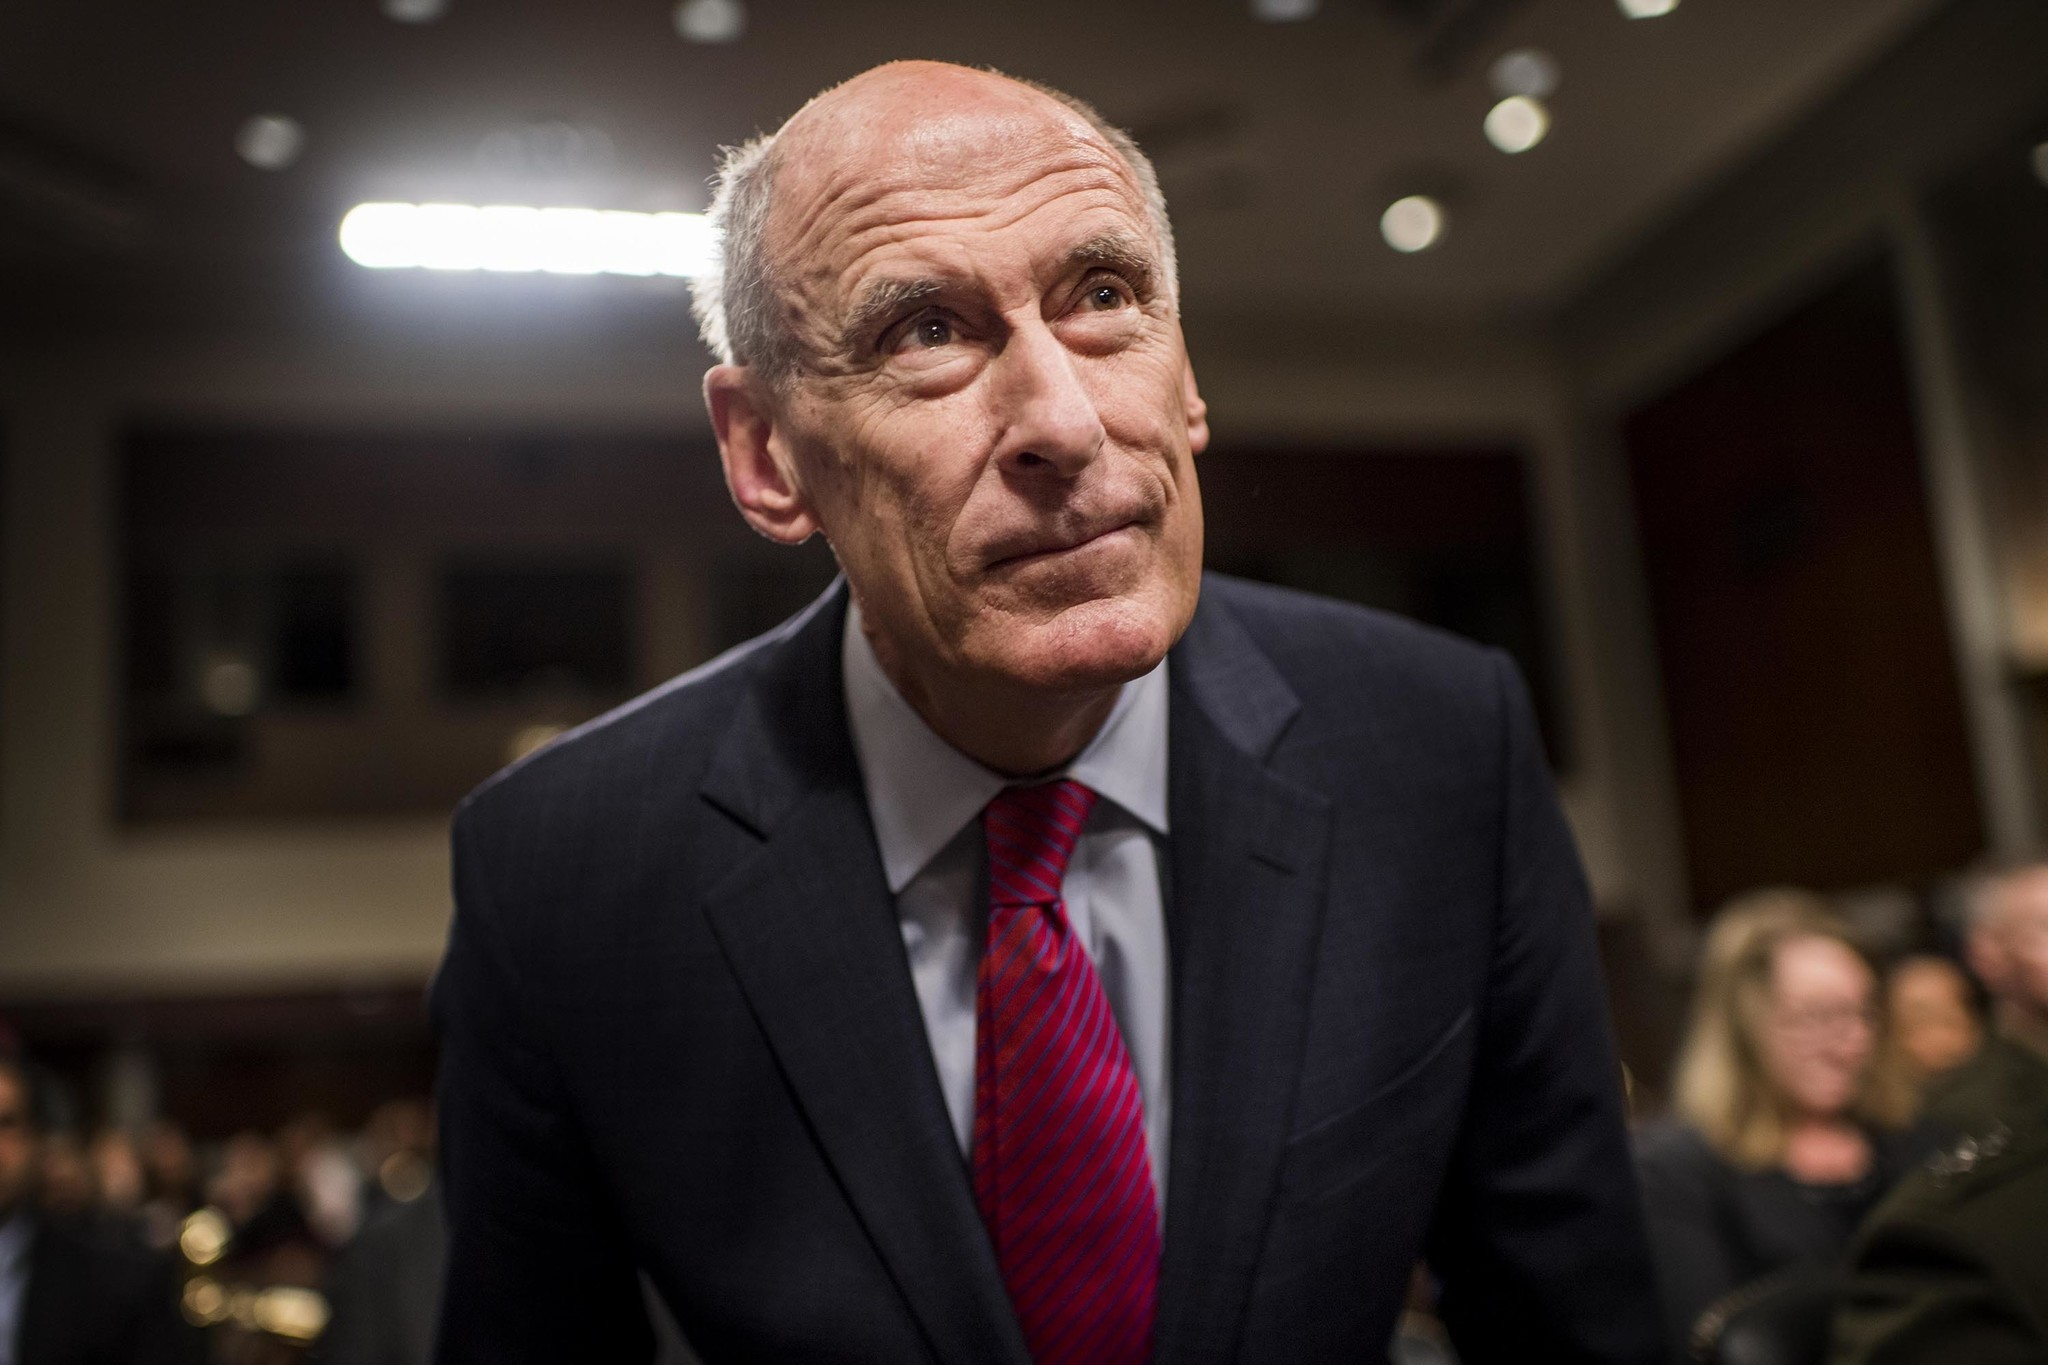 Coats won't comment on report that Trump asked him to deny evidence of collusion